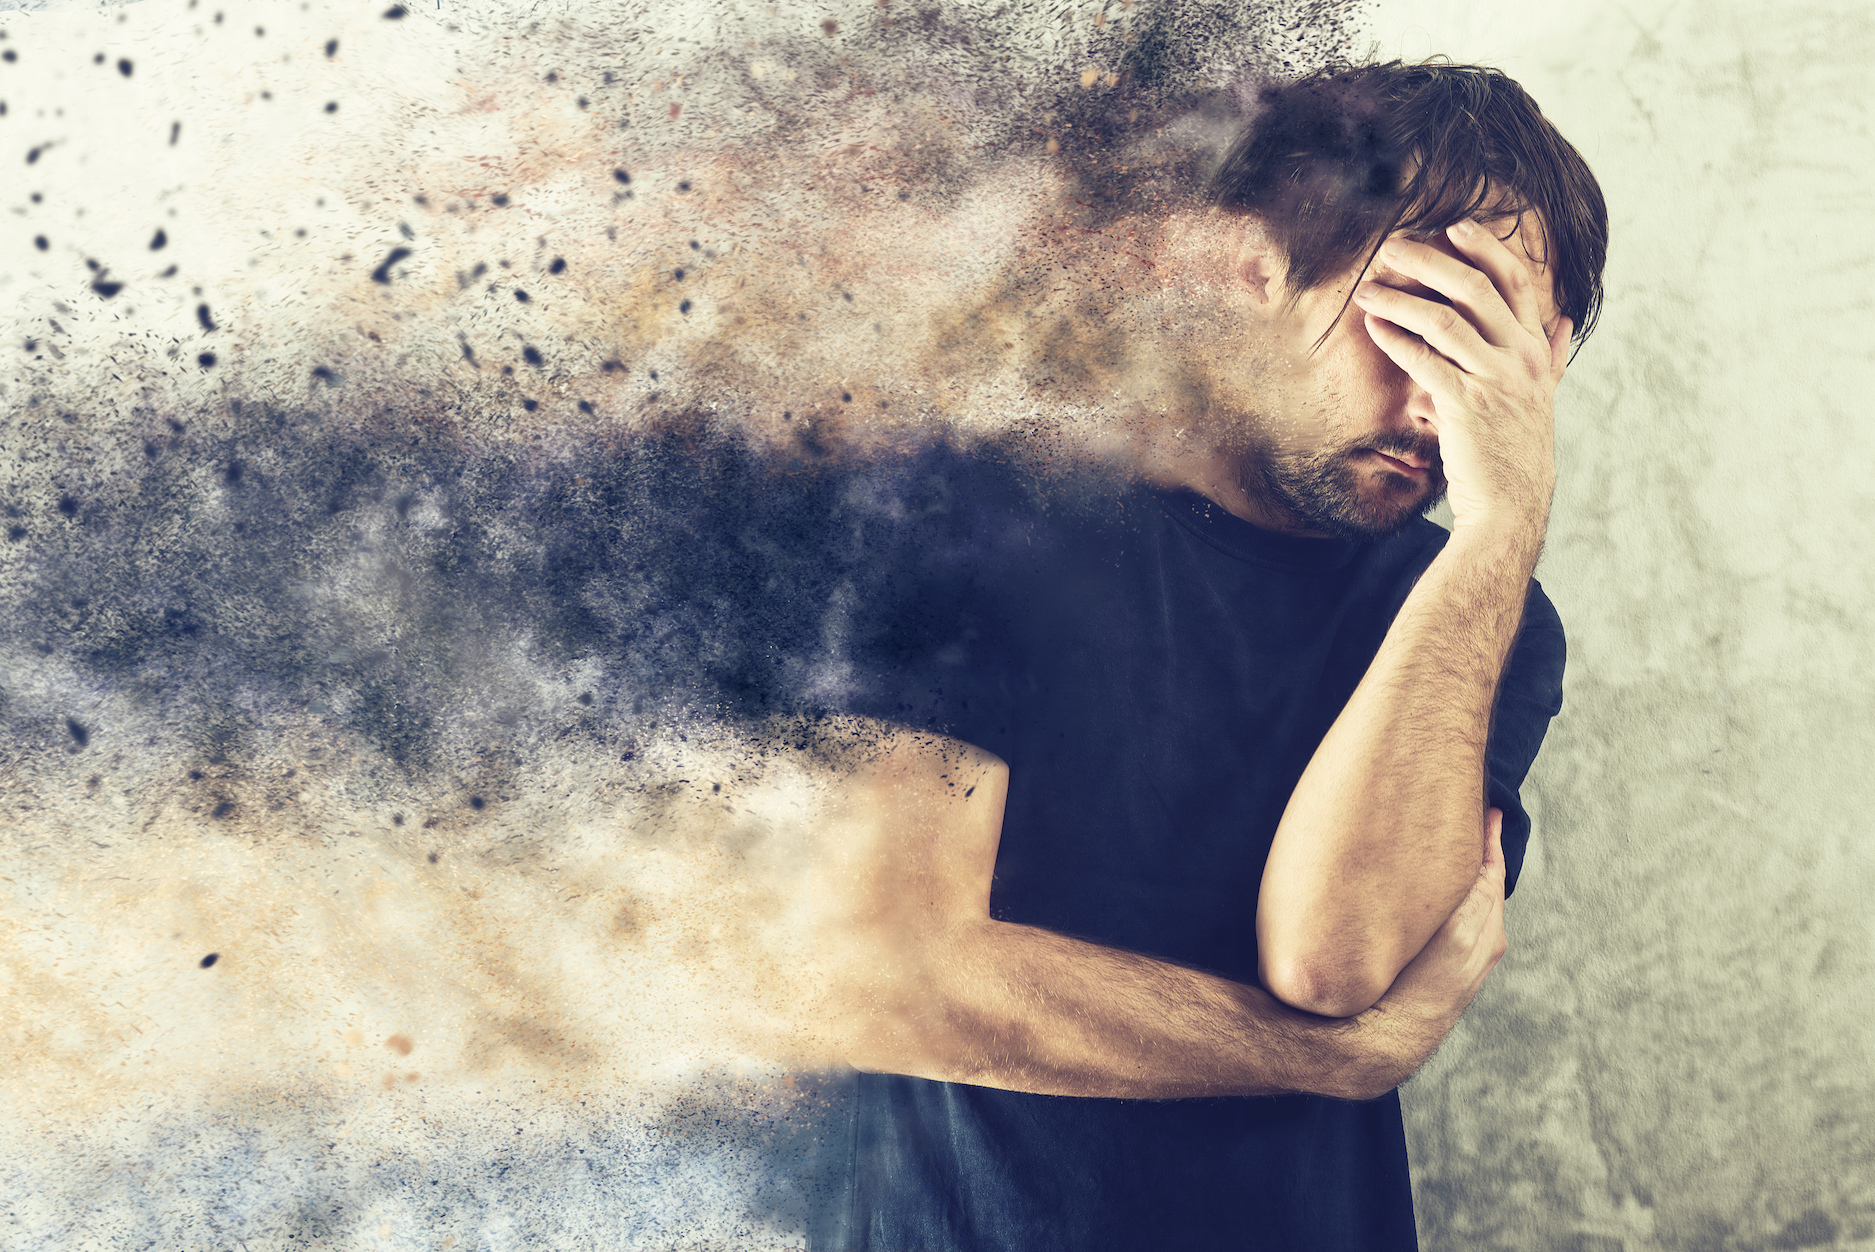 Researchers have pinpointed the region of the brain responsible for stress and anxiety, which could lead to better treatments for depression.